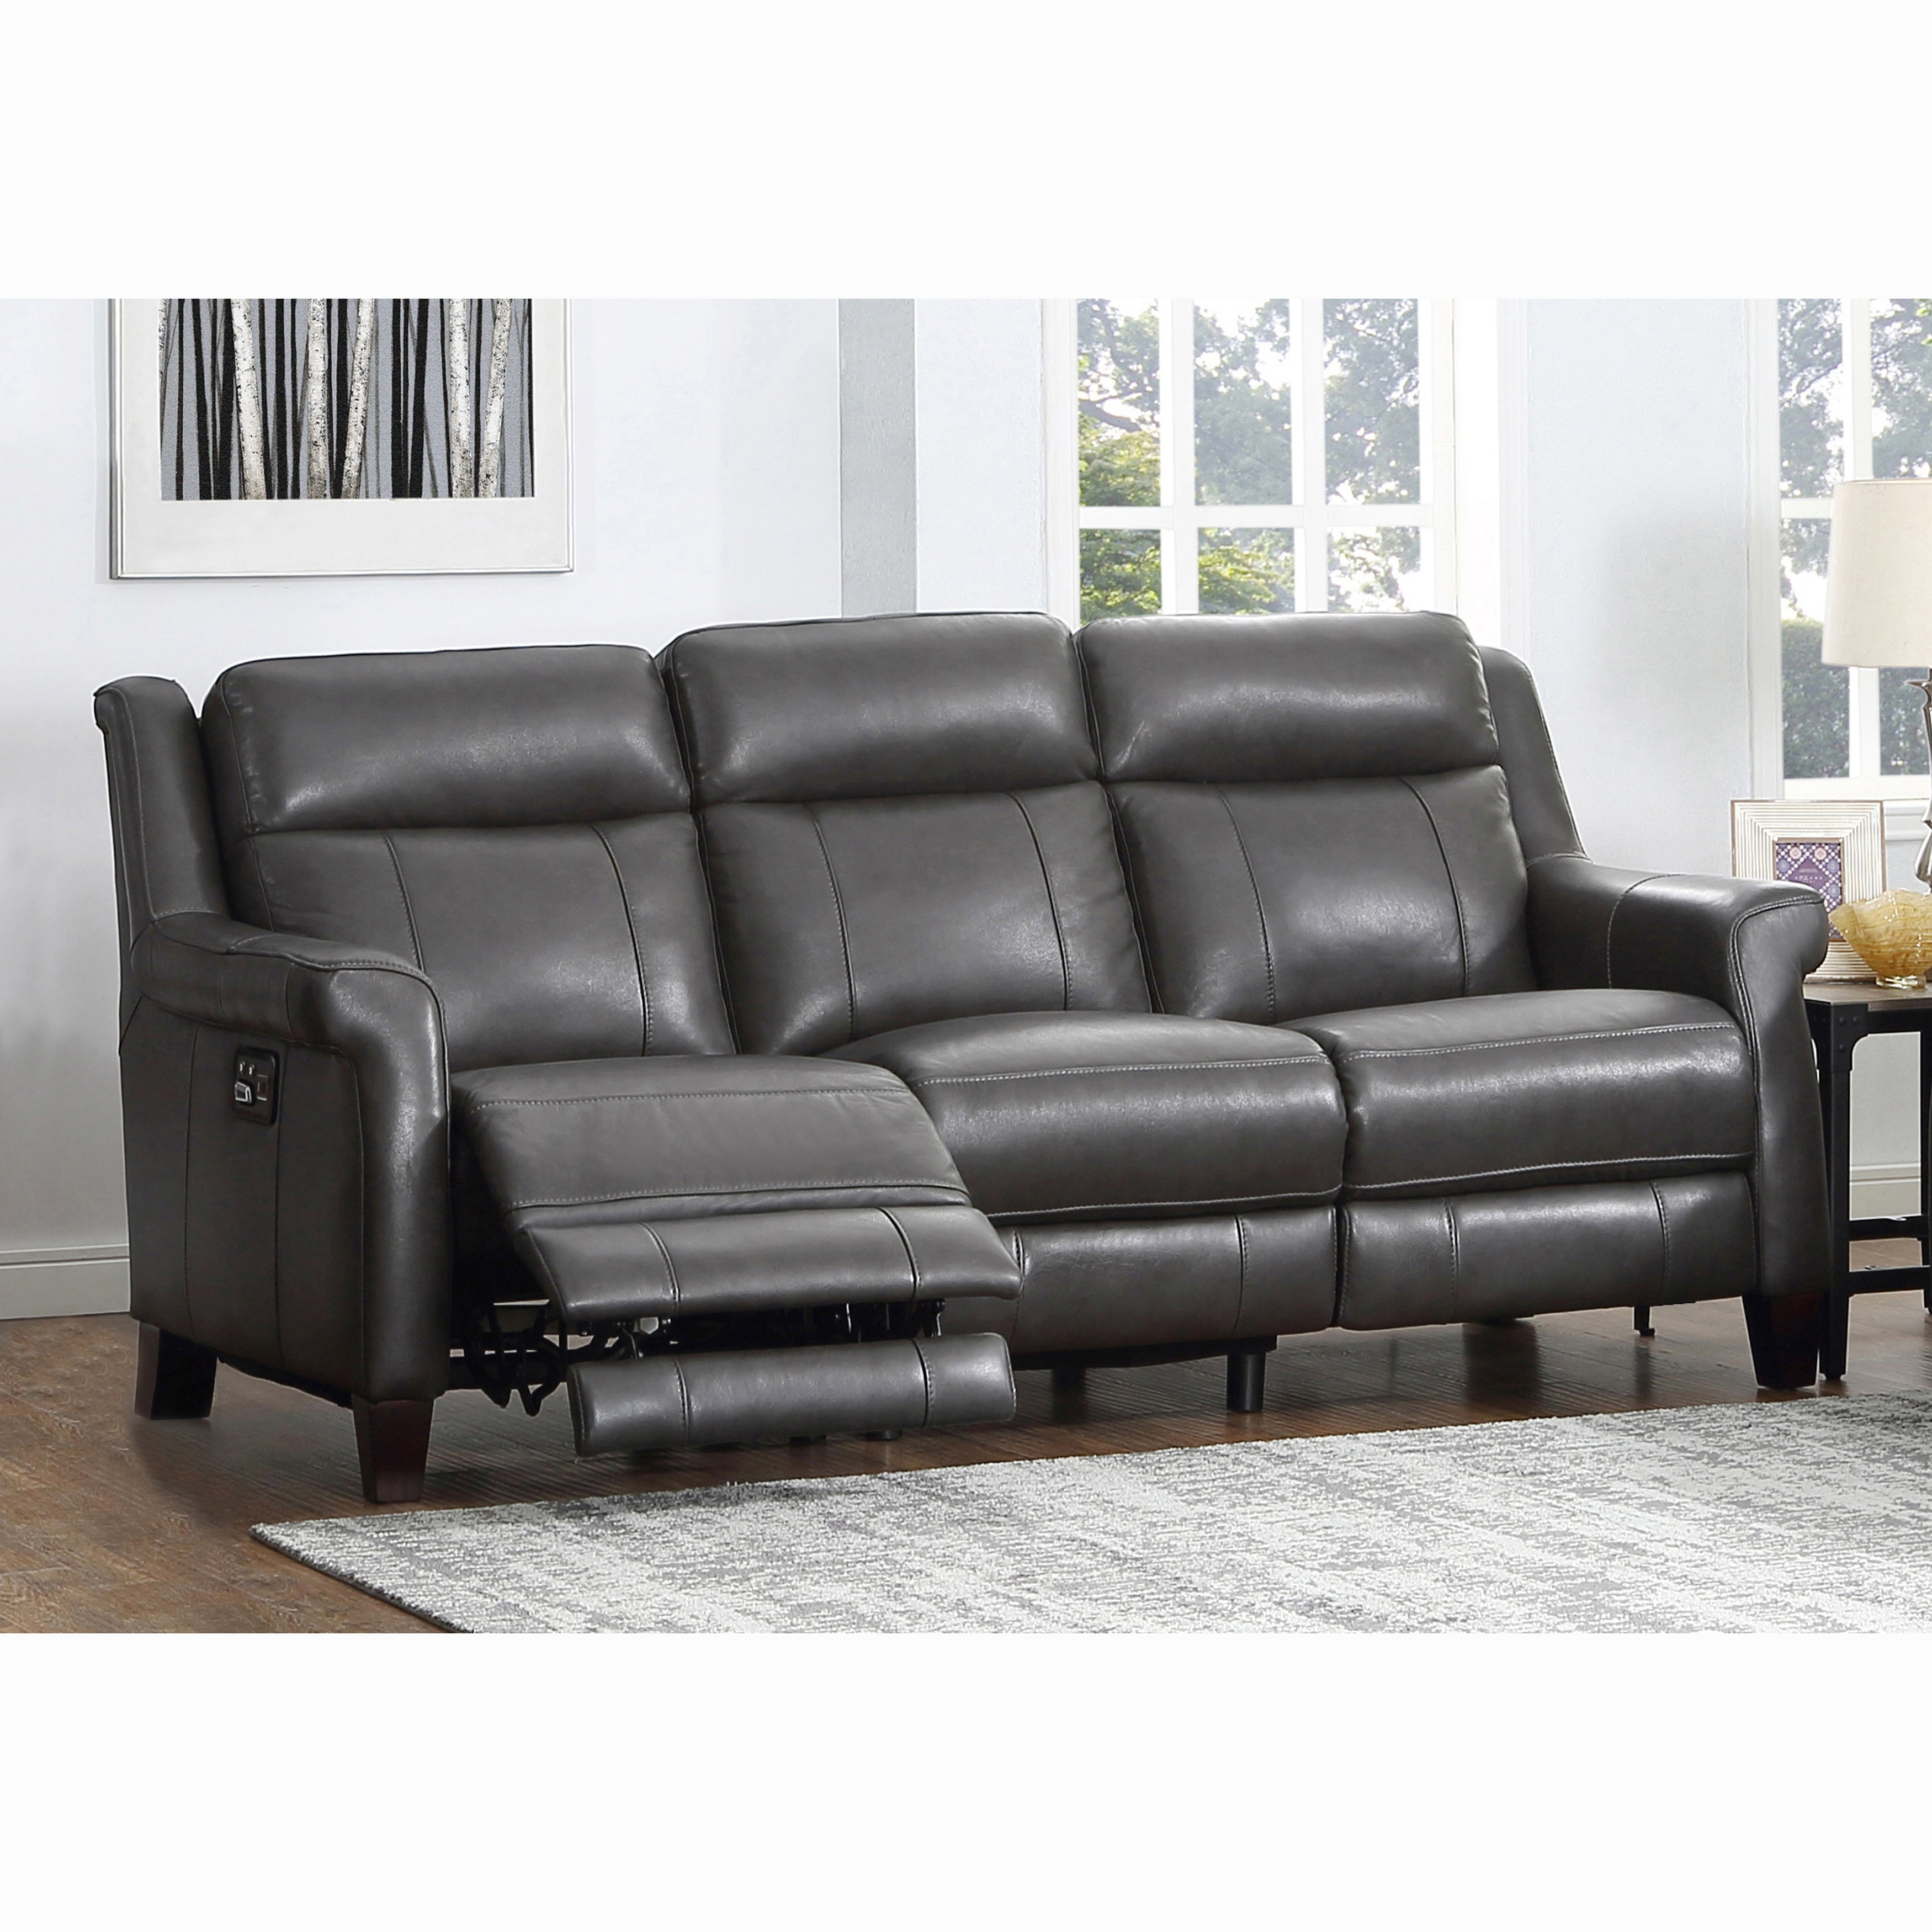 Shop Alex Grey Top Grain Leather Power Reclining Sofa With Power Headrests    Free Shipping Today   Overstock.com   18755219